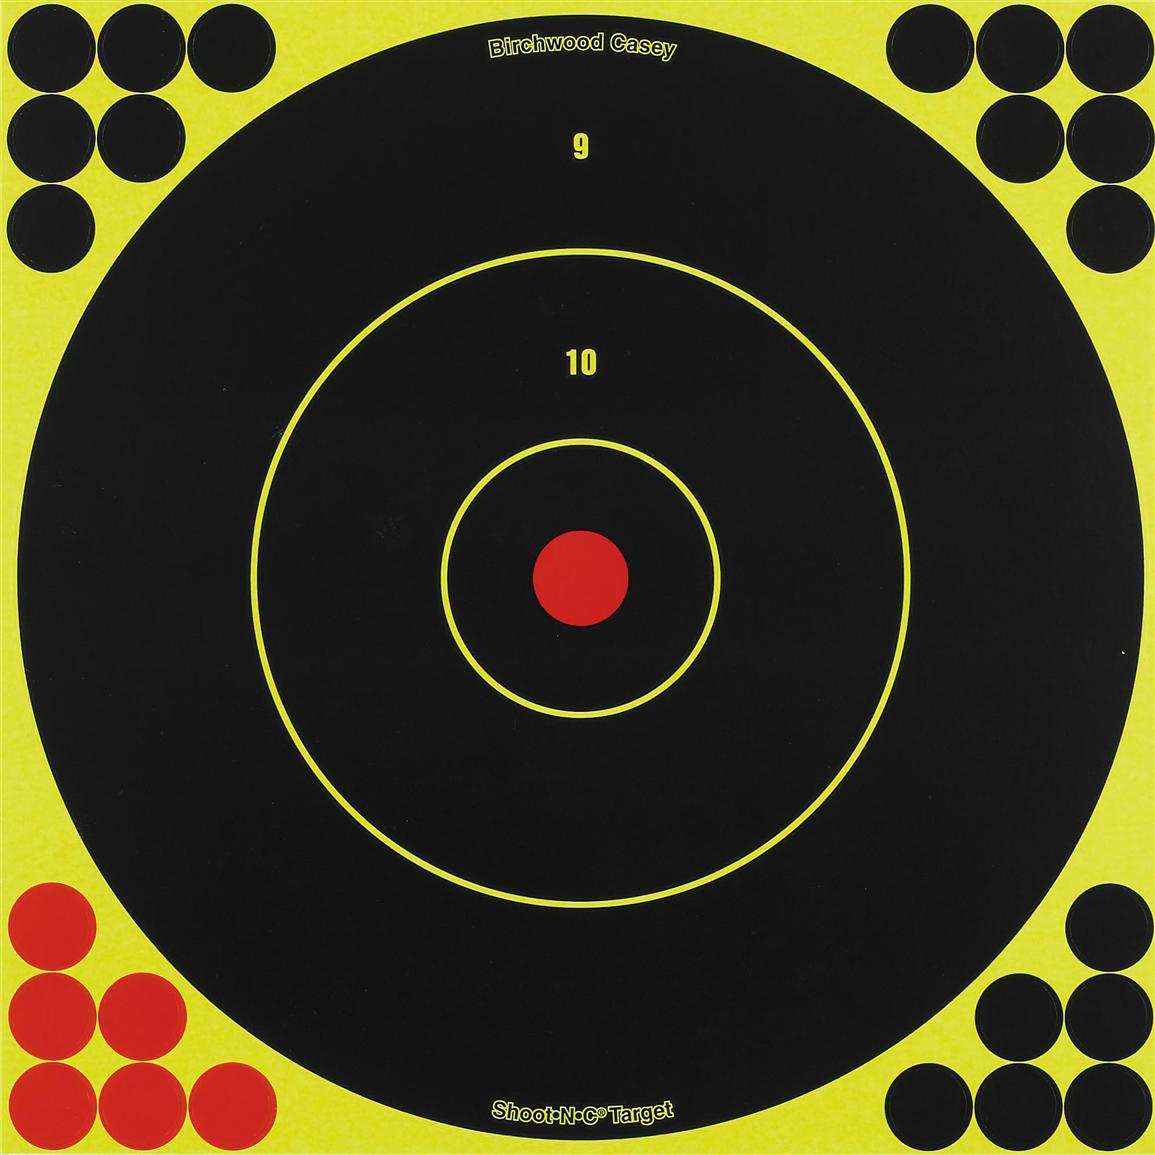 Birchwood Casey® 12 inch Shoot-N-C® Bull's Eye Target